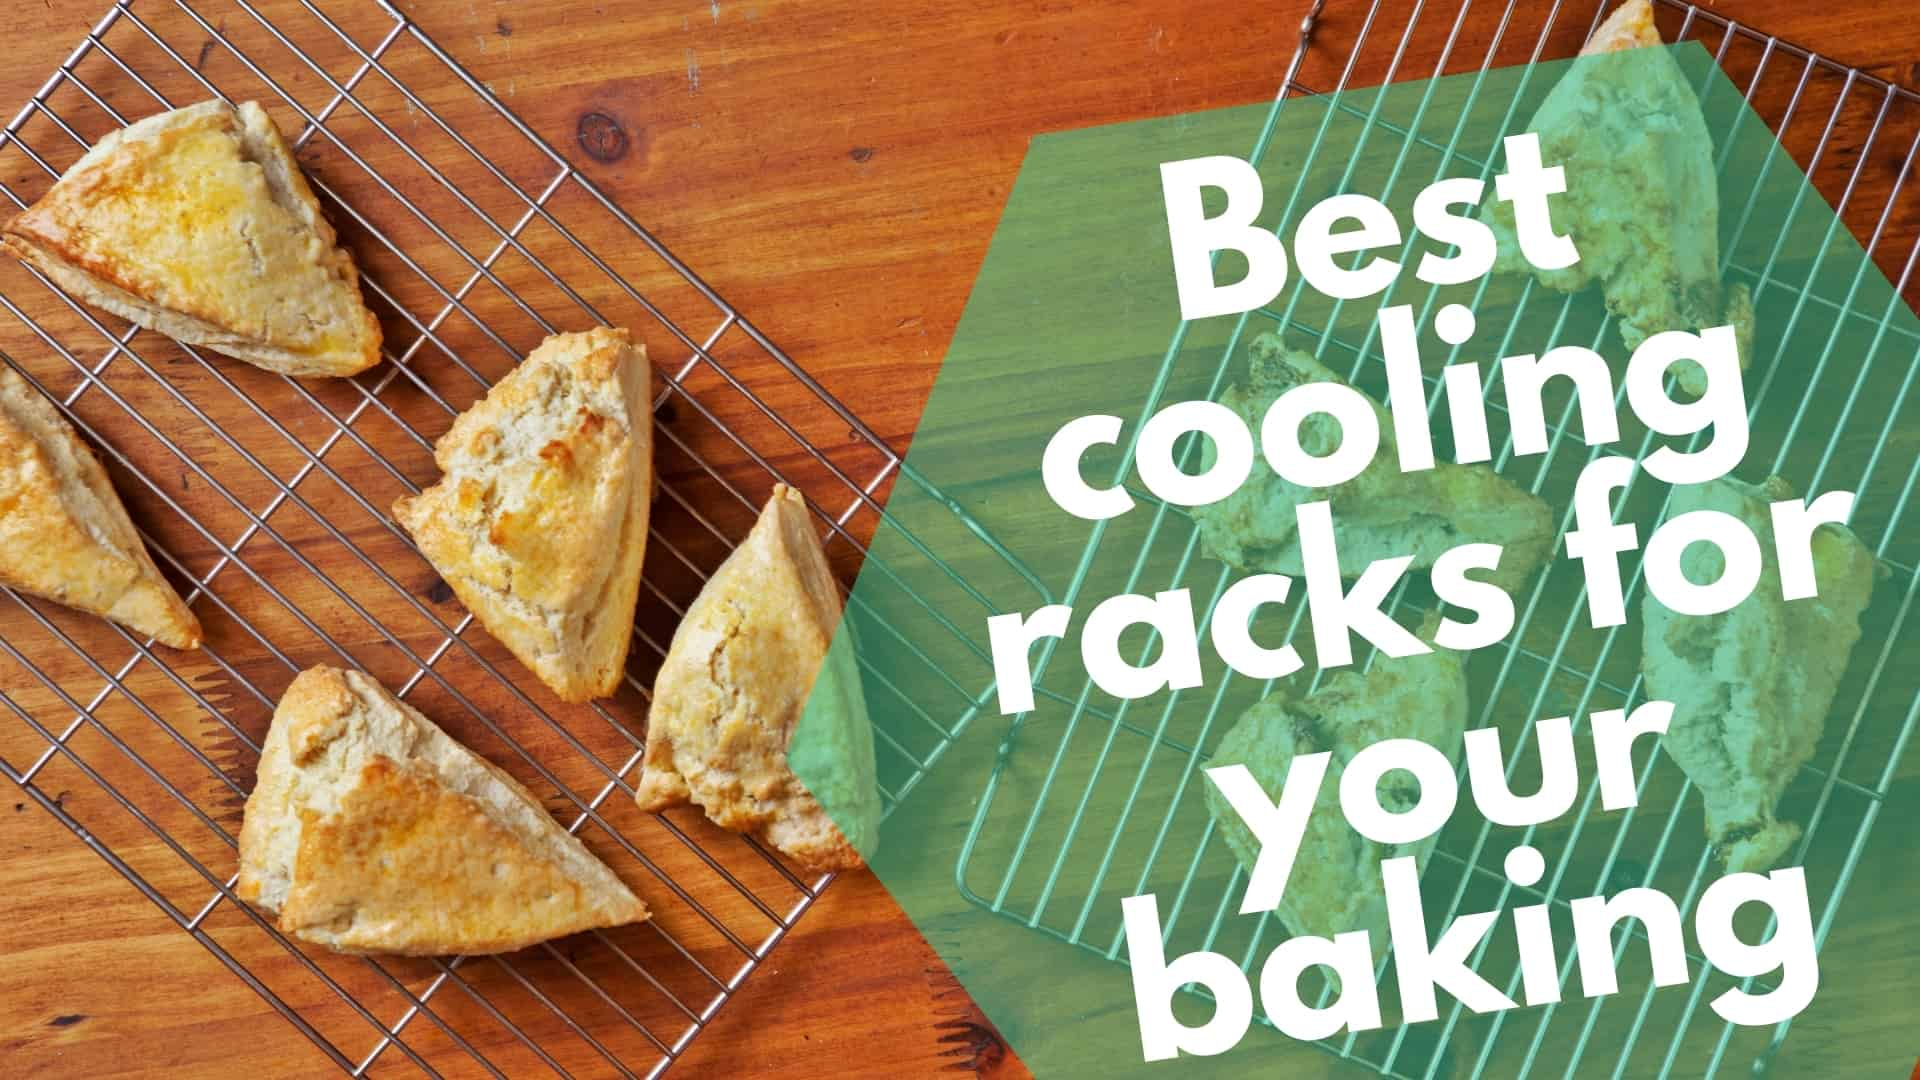 Best cooling racks for your baking